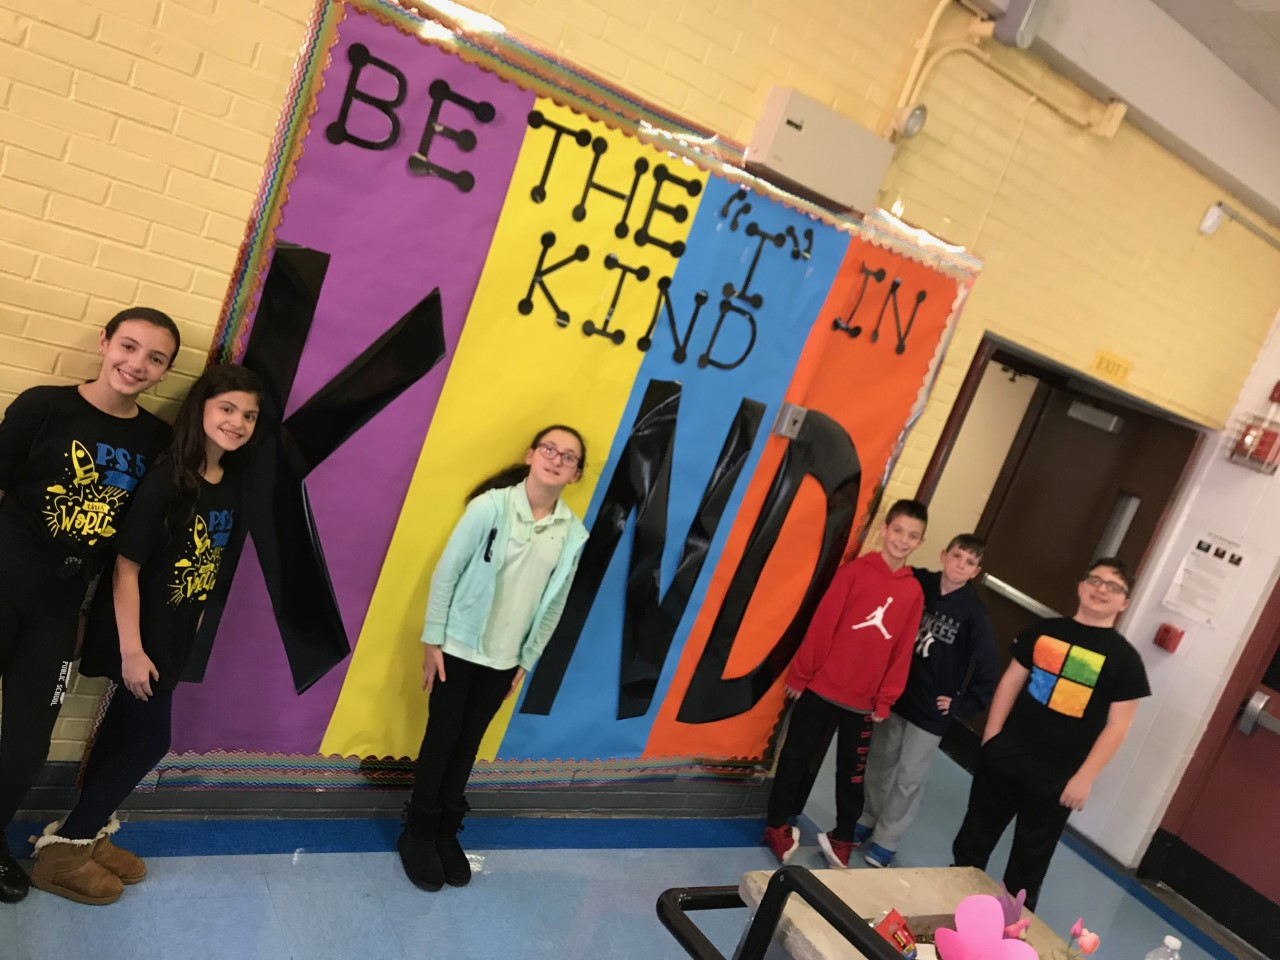 Children in front of Be Kind Poster